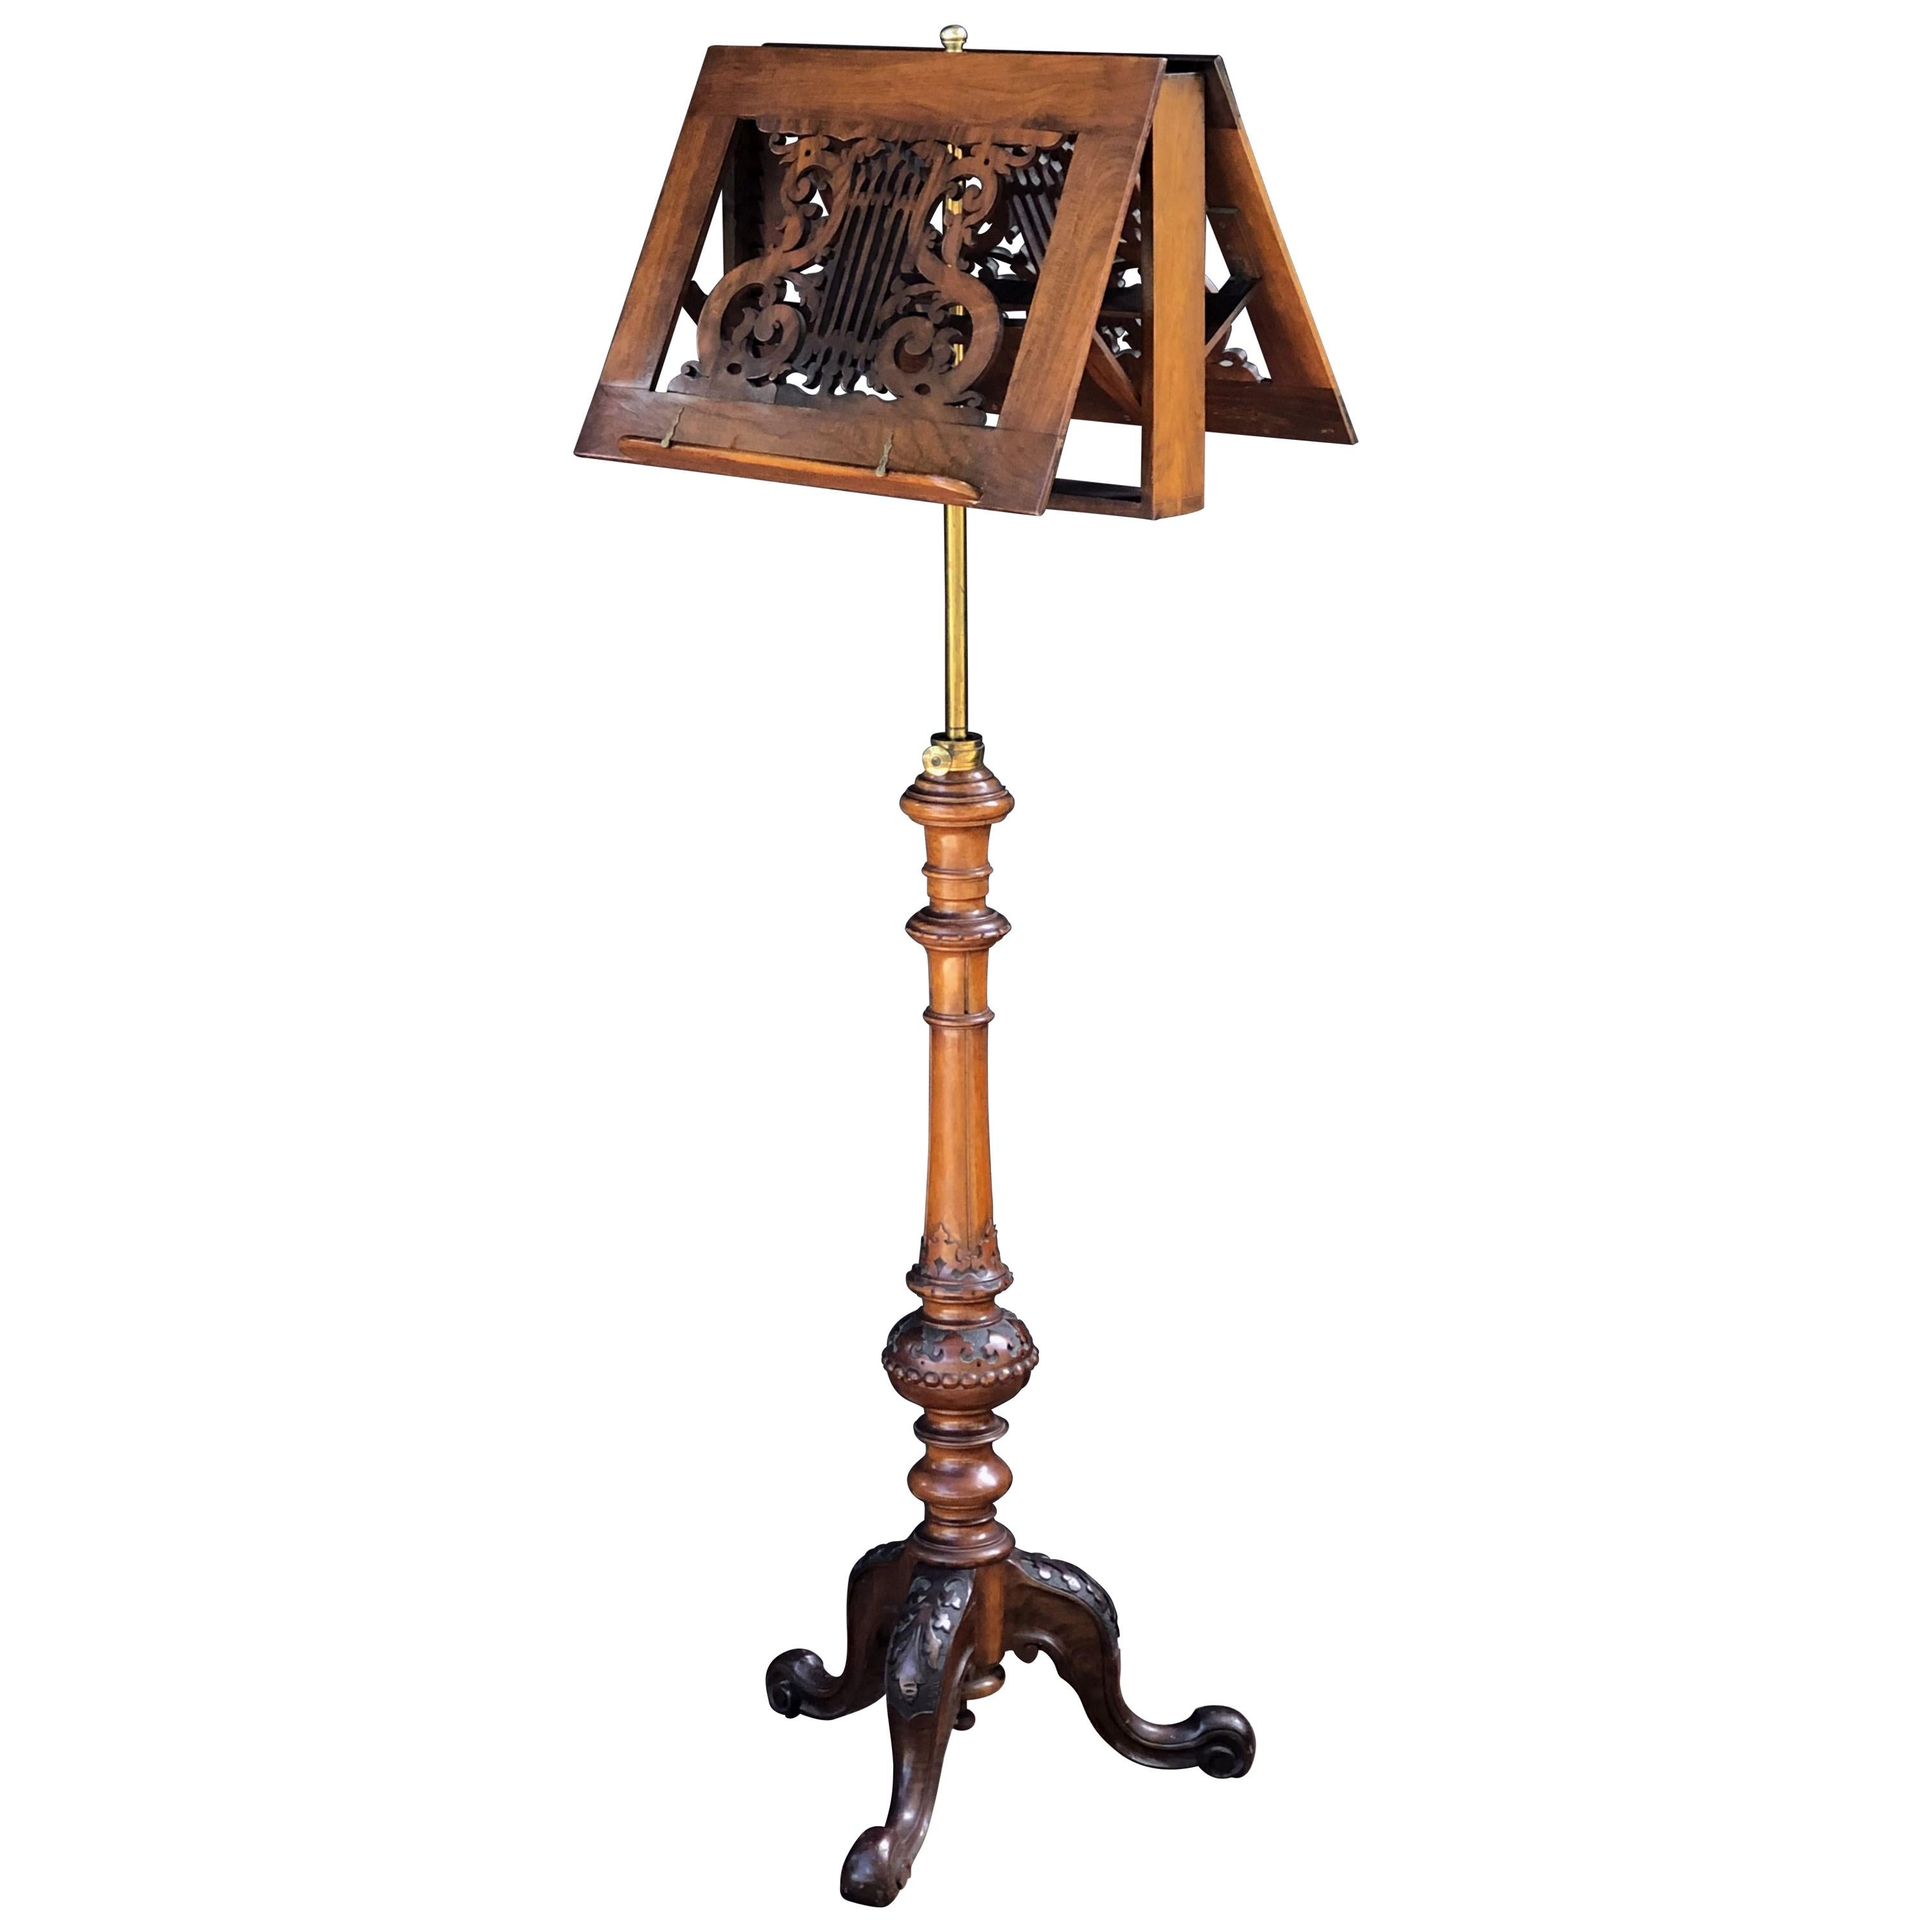 English Adjustable Duet Music Stand of Carved Walnut